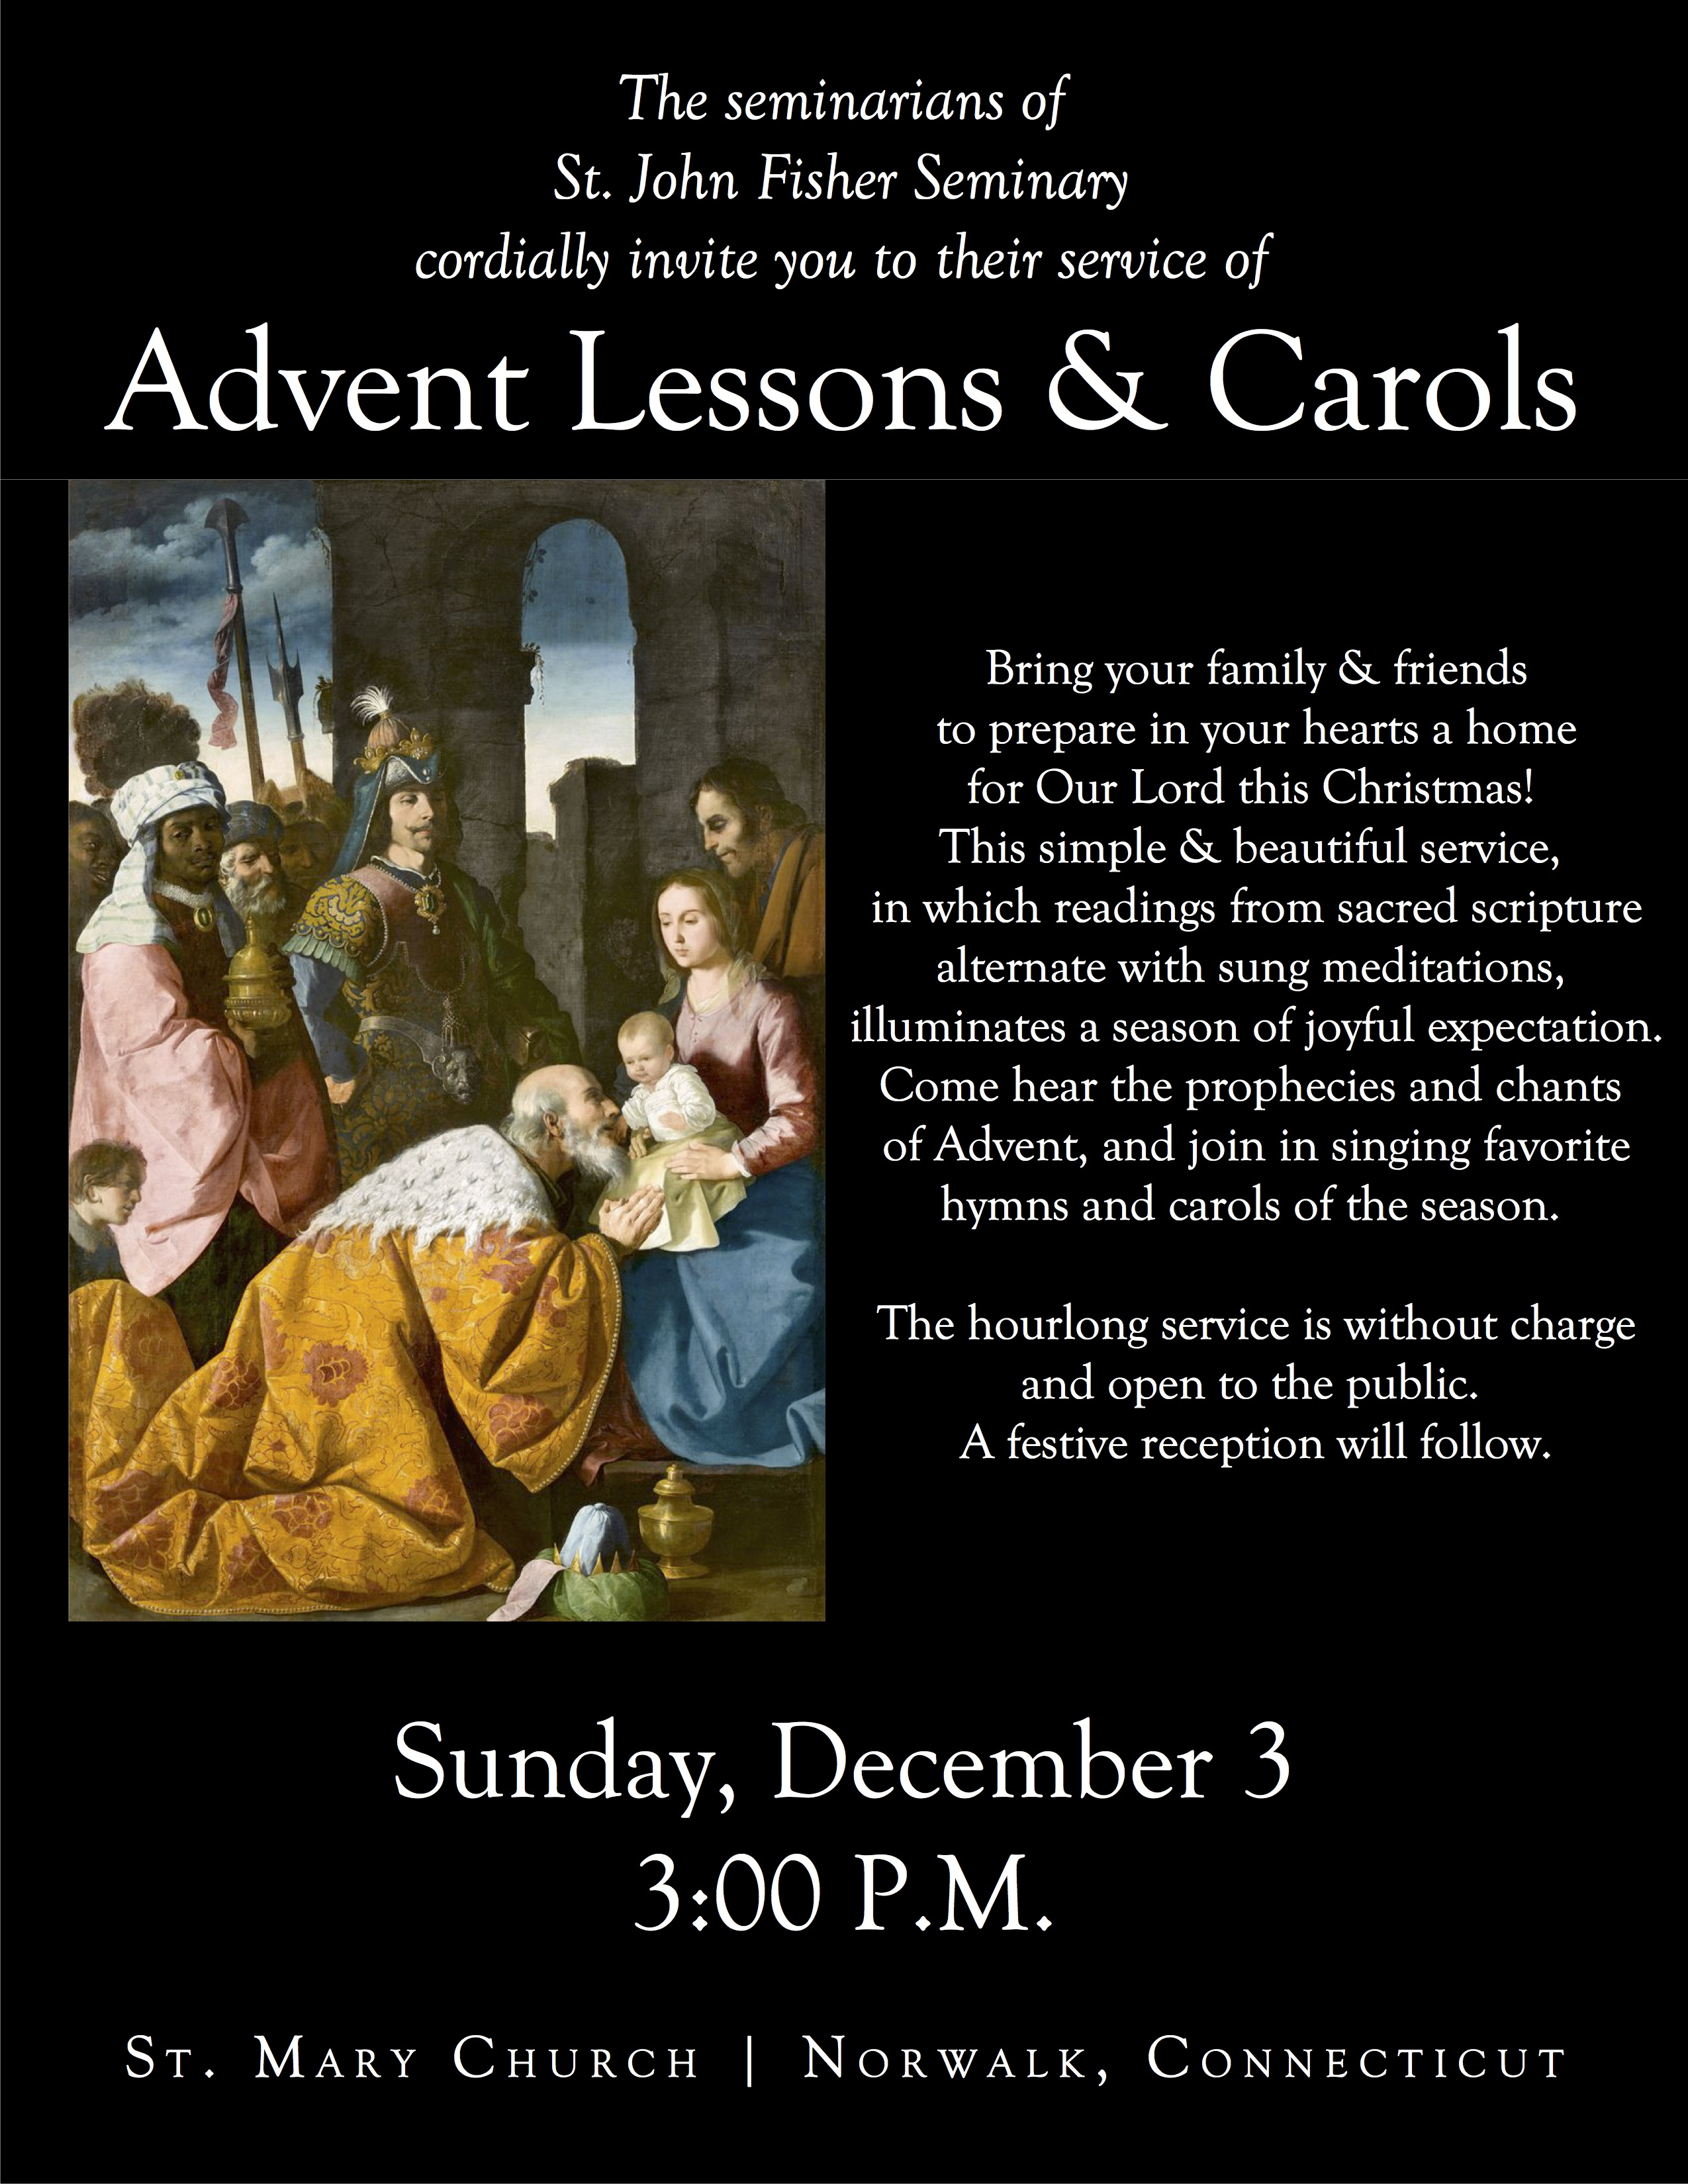 SJF Lessons and Carols poster - 03 December 2017